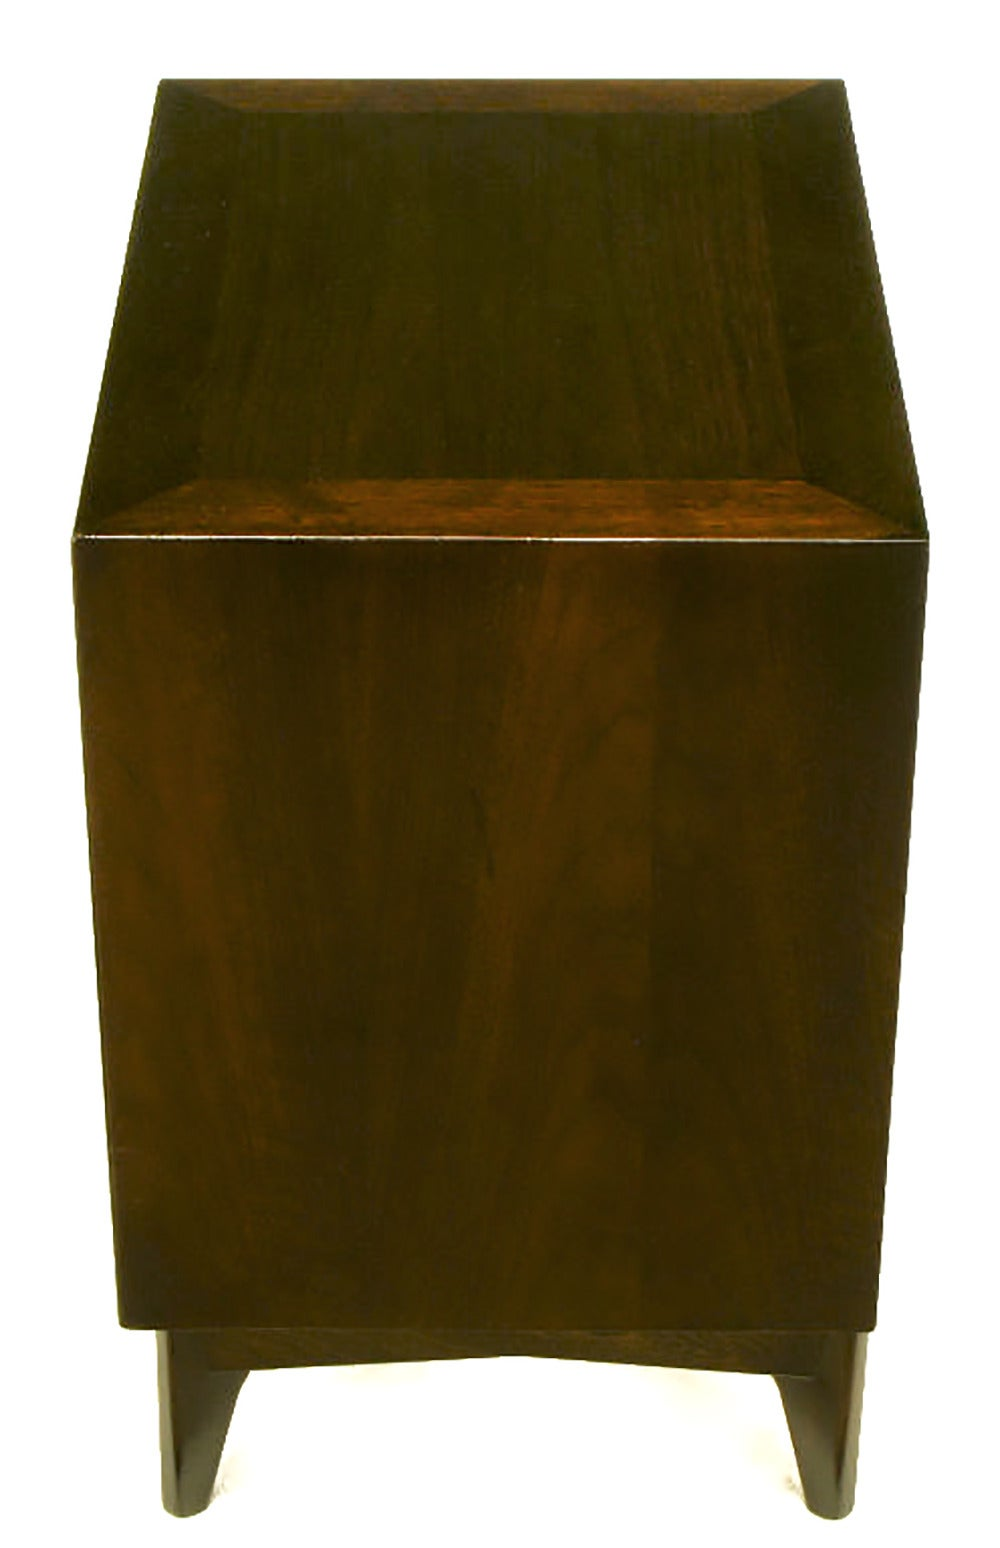 Pair of Red Lion Sleek 1950s Dark Walnut Nightstands In Excellent Condition For Sale In Chicago, IL